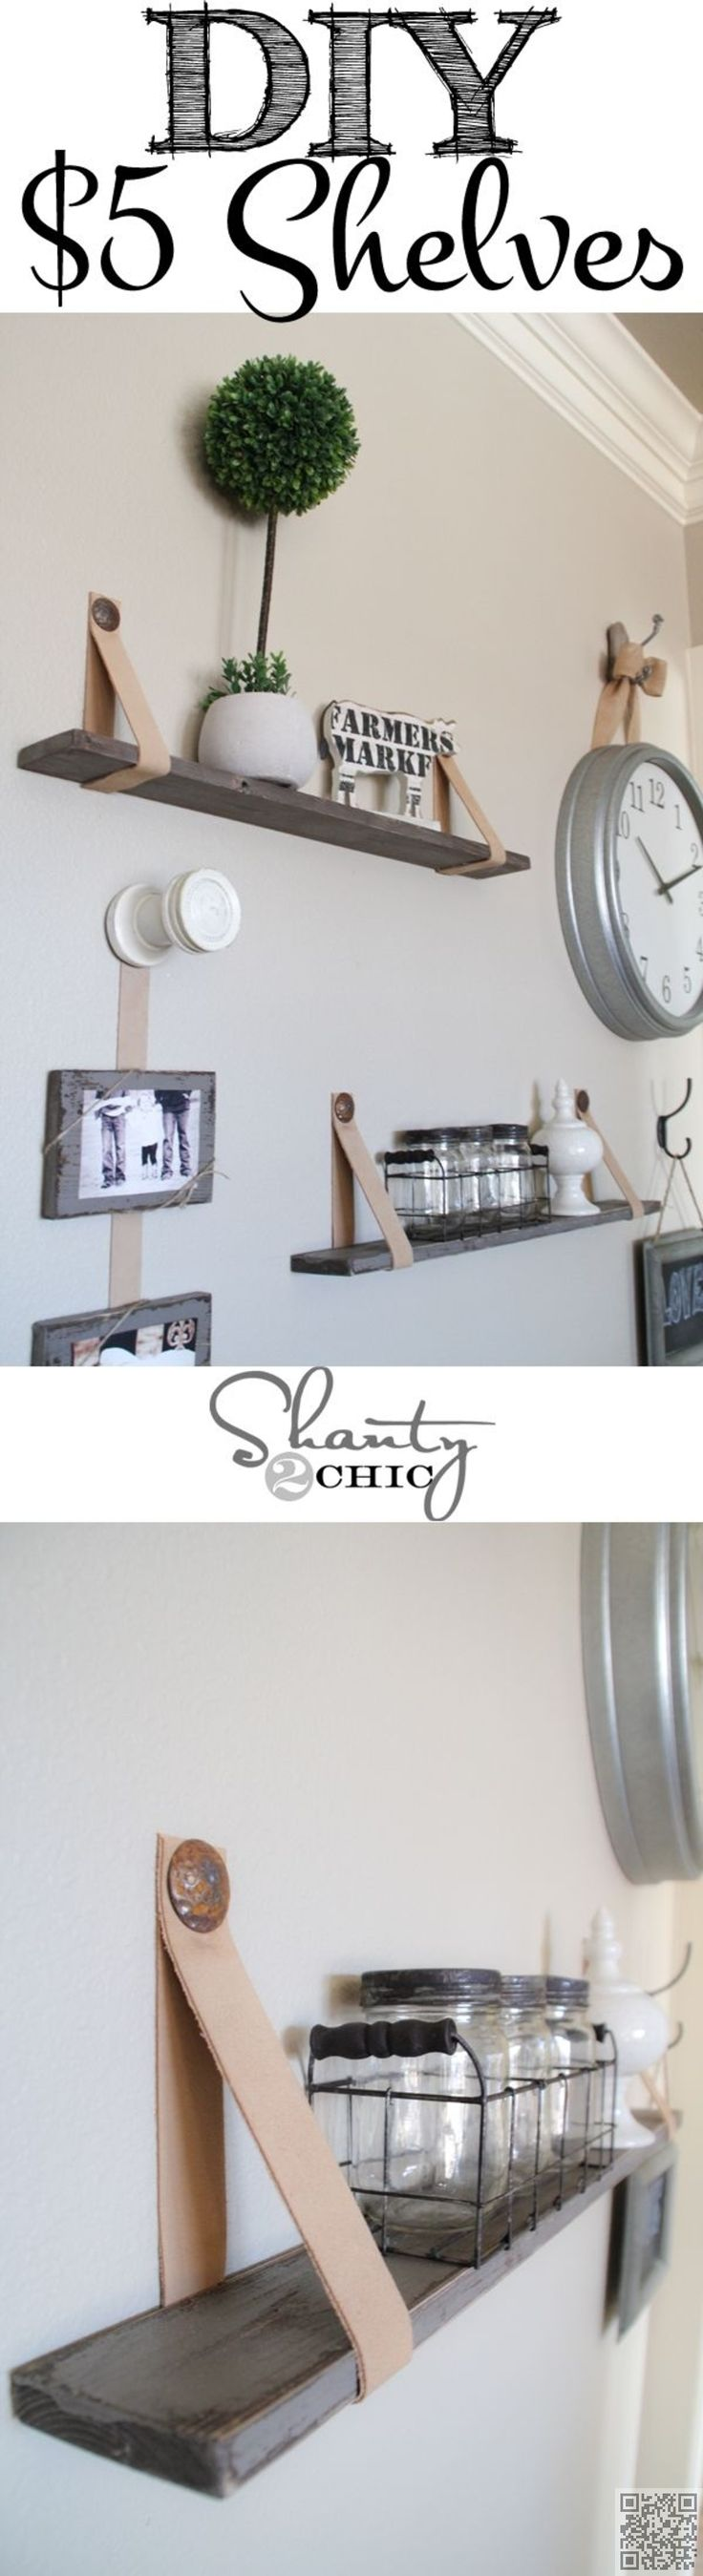 38. Easy $5 #Shelves with Leather #Straps - Shelfies: the Best DIY Shelves ... → DIY #Ordinary